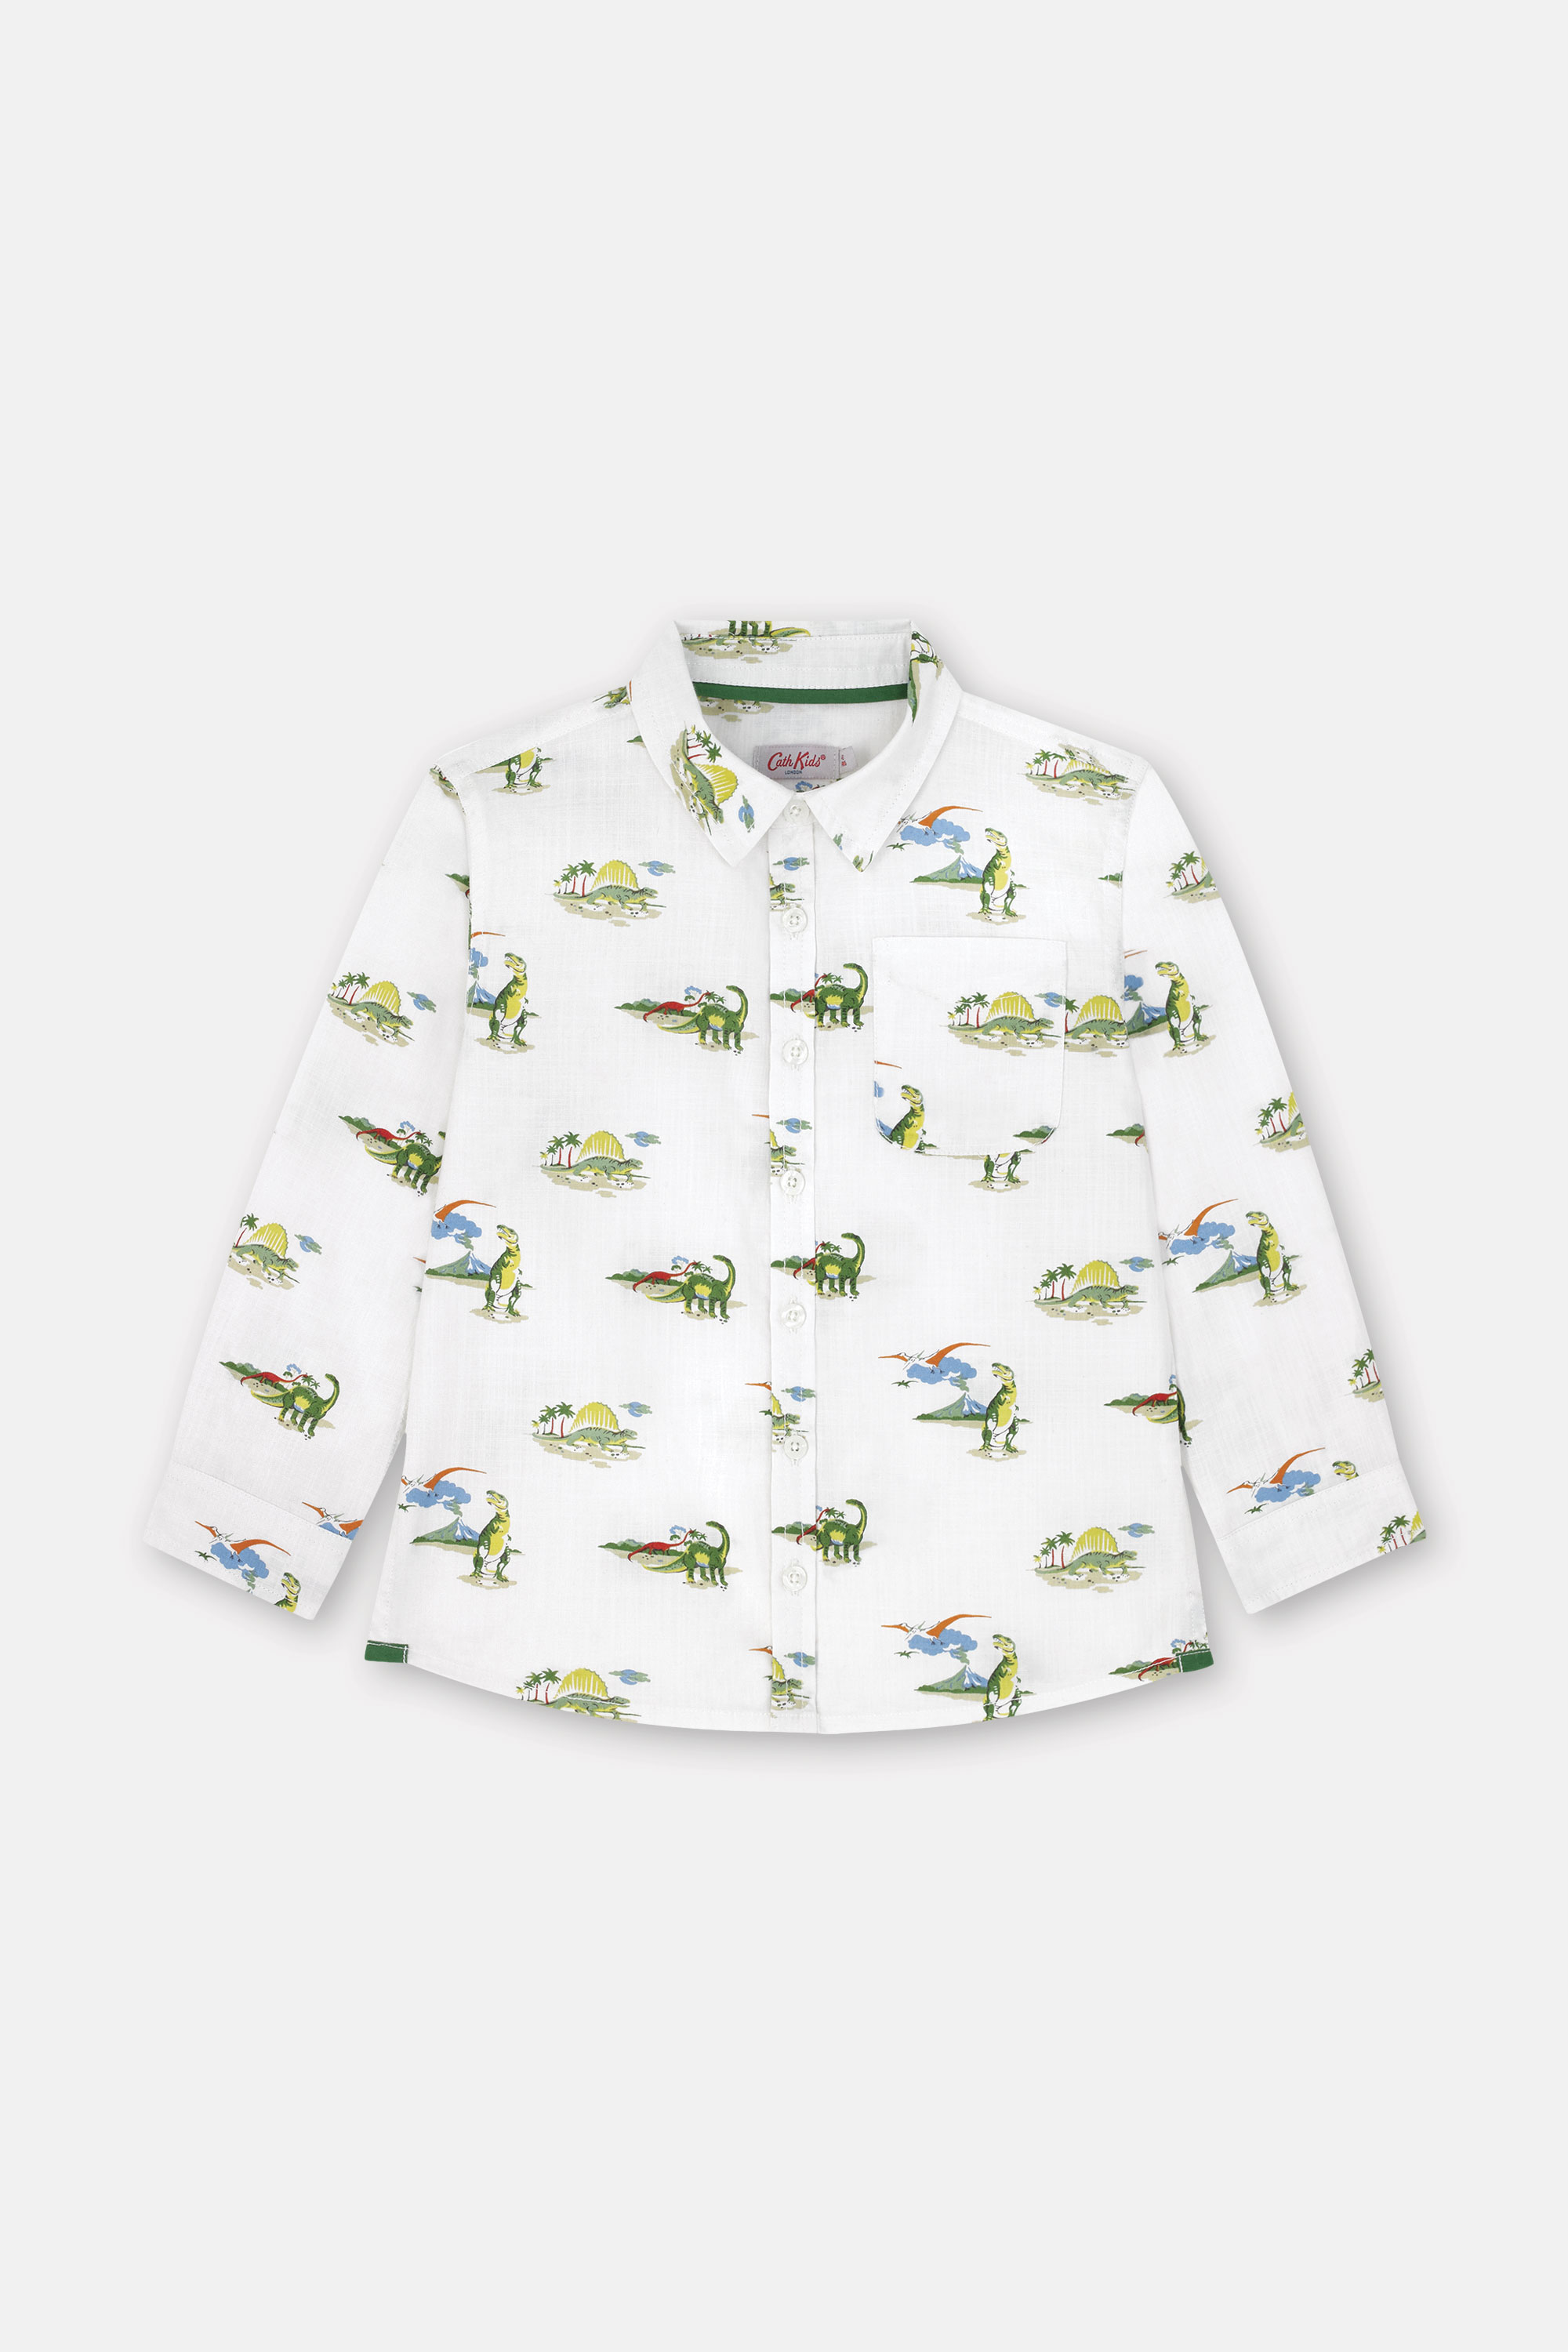 Cath Kidston Kids Long Sleeve Oversized Shirt in Ivory, Spaced Dino, 100% Cotton, 1-2 yr